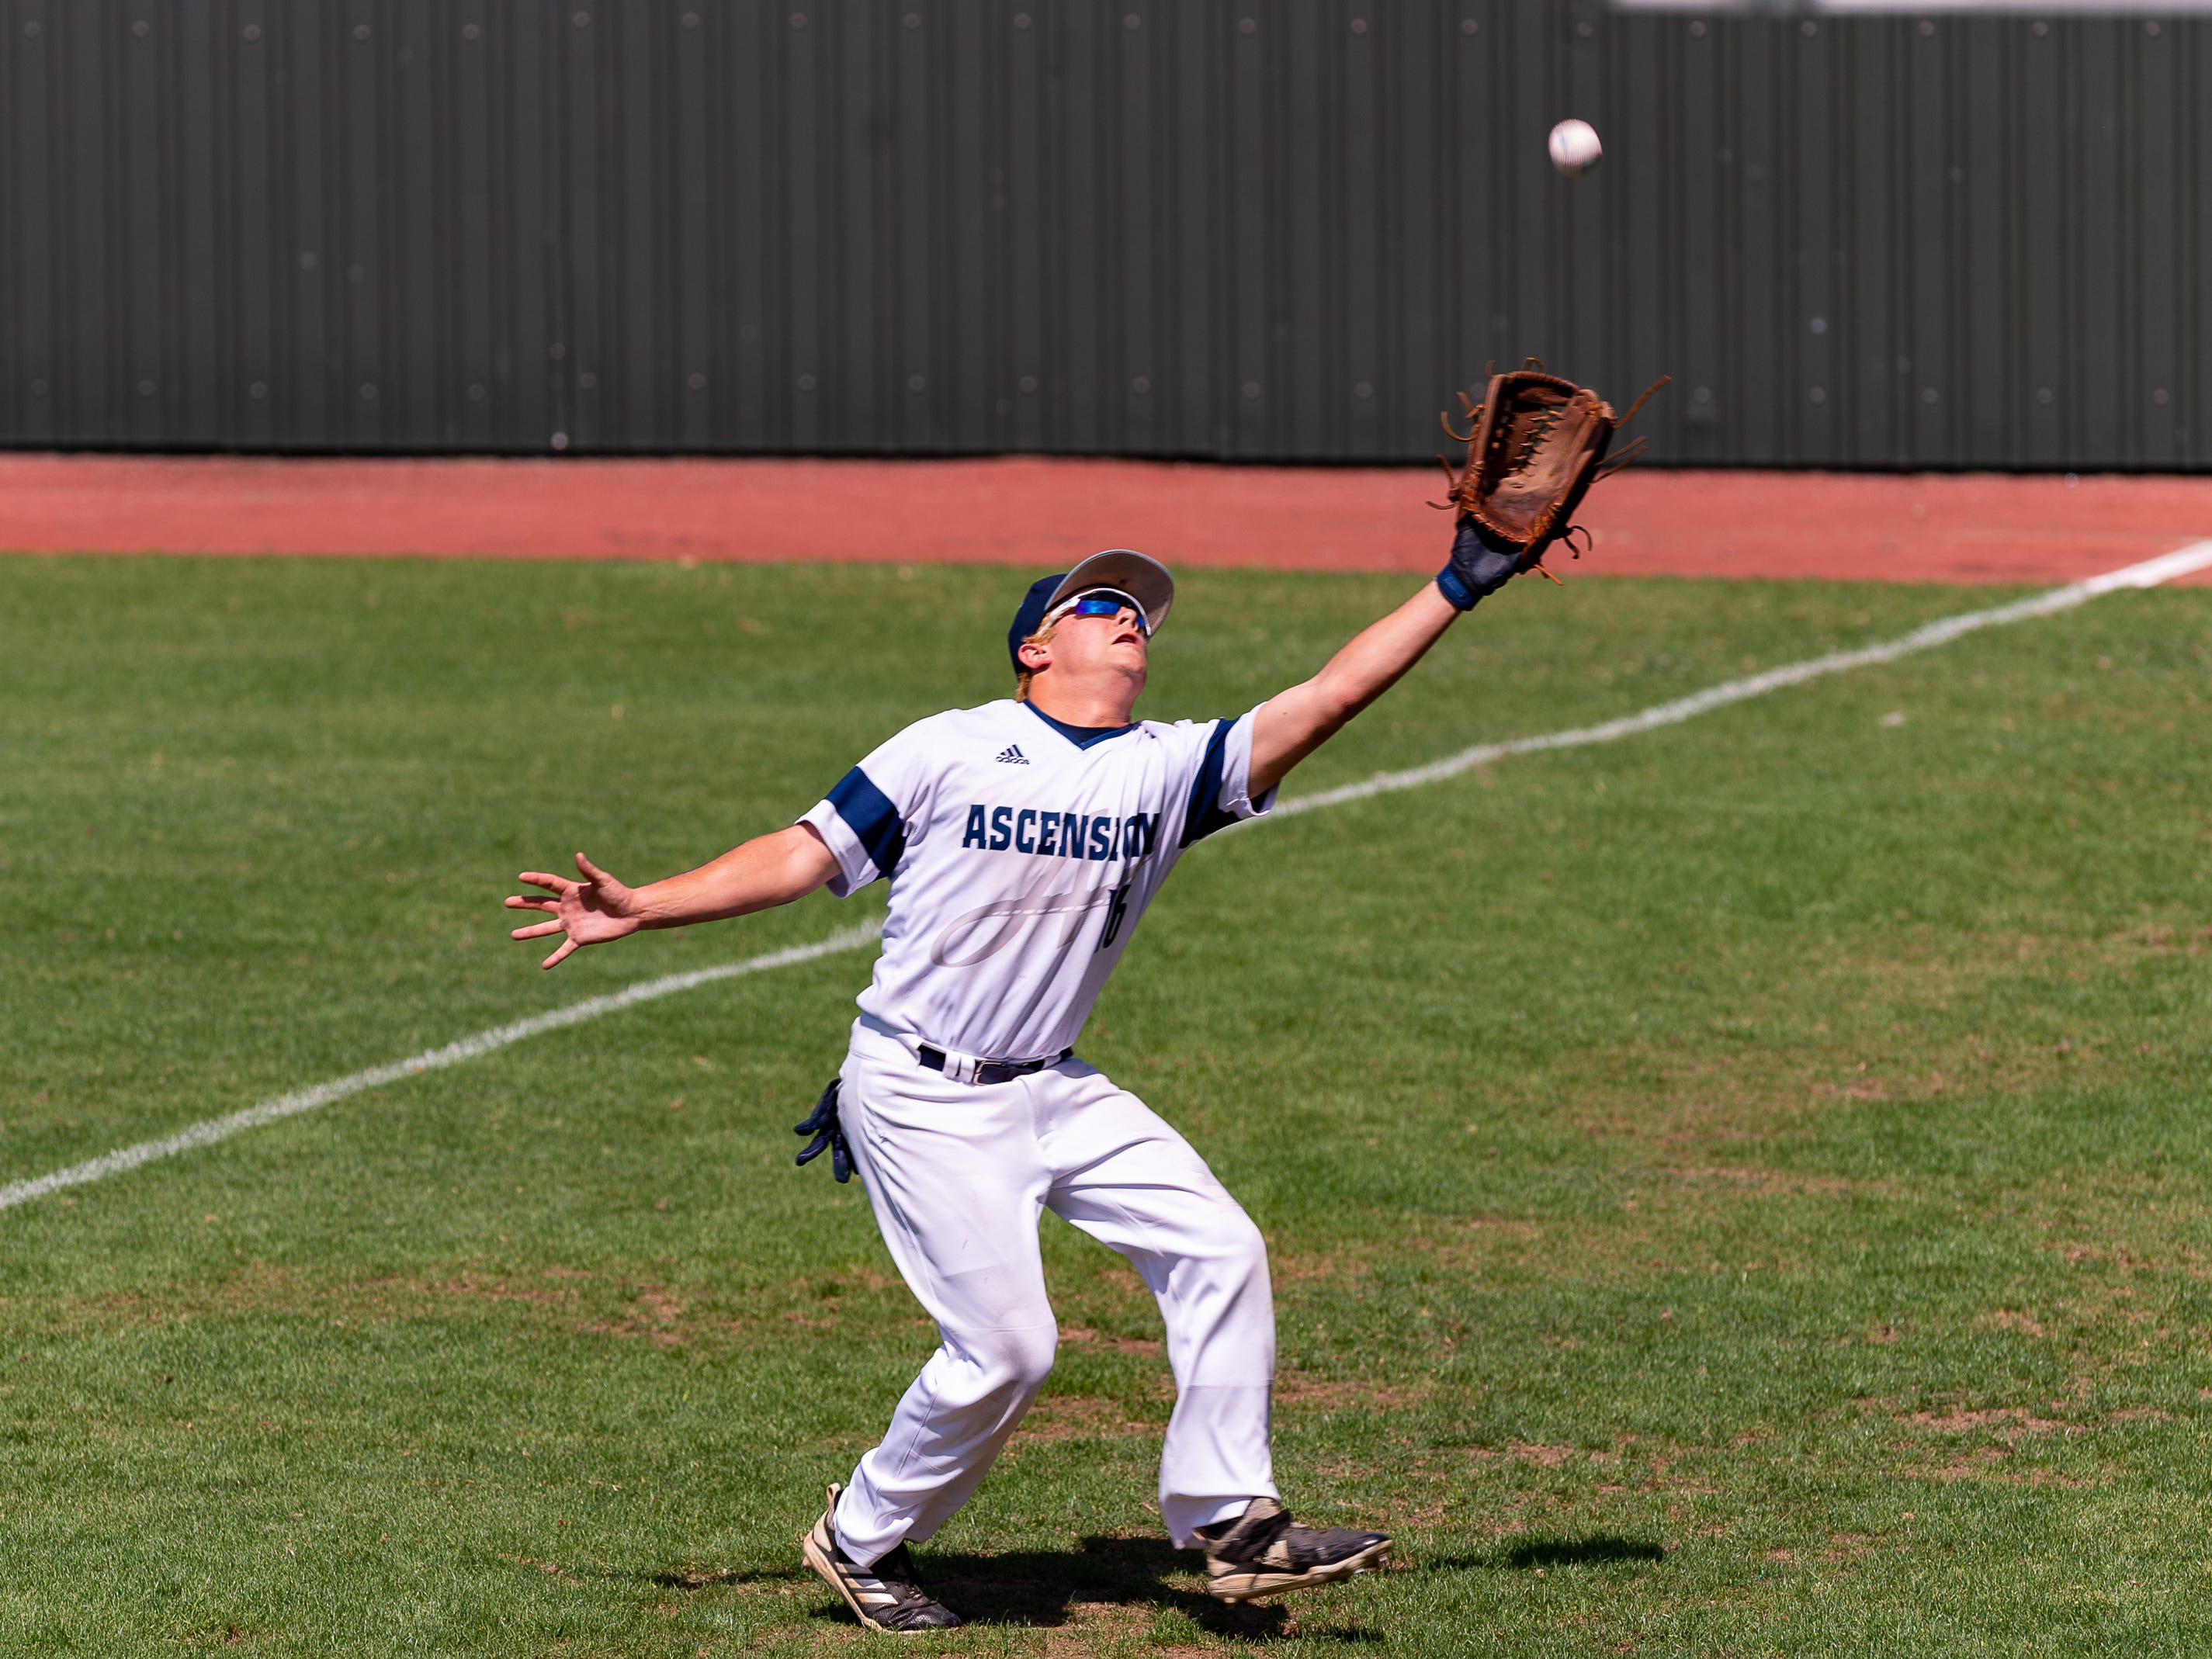 Blake Pearson chases down a foul ball for the out as Ascension Episcopal falls to Calvary Baptist Championship round at the LHSAA State Tournament. Monday, May 13, 2019.